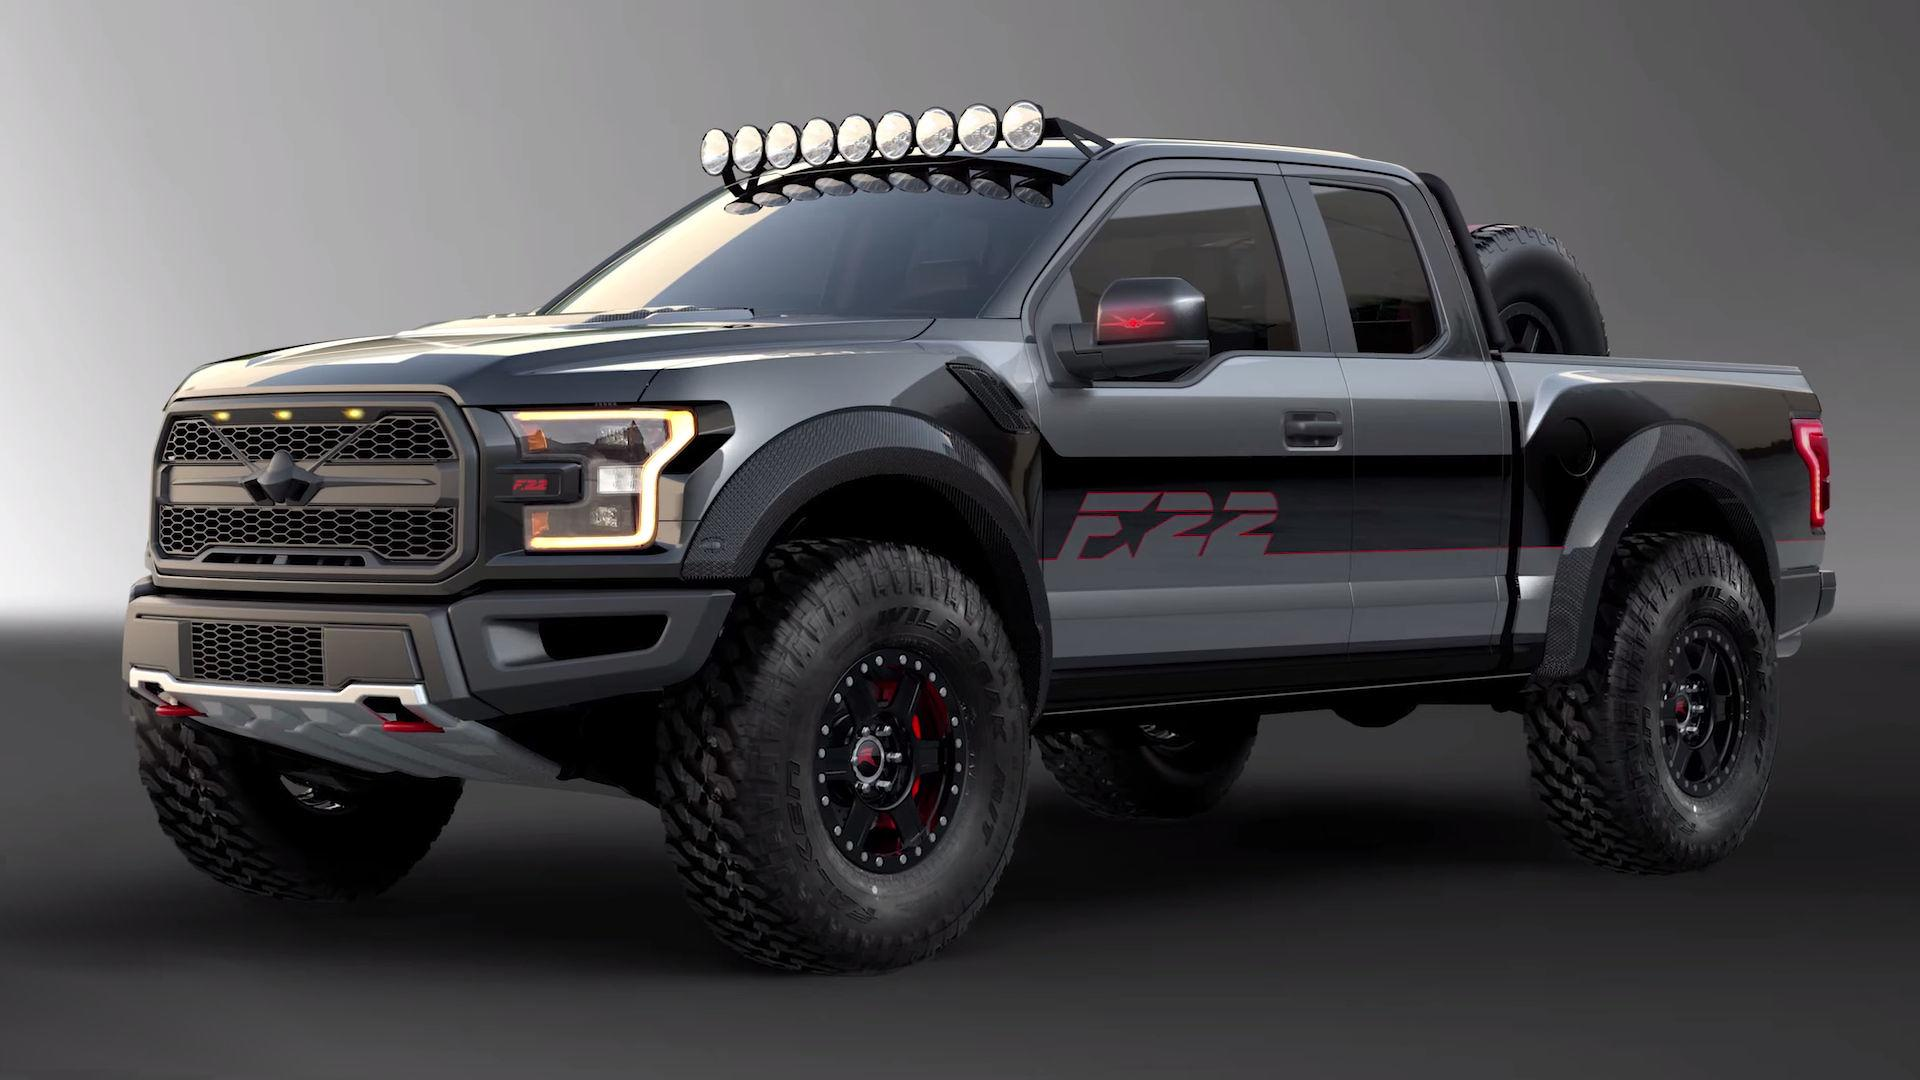 Used Ford Explorer >> Custom Ford F-150 Raptor Nets $300K at Auction » AutoGuide.com News